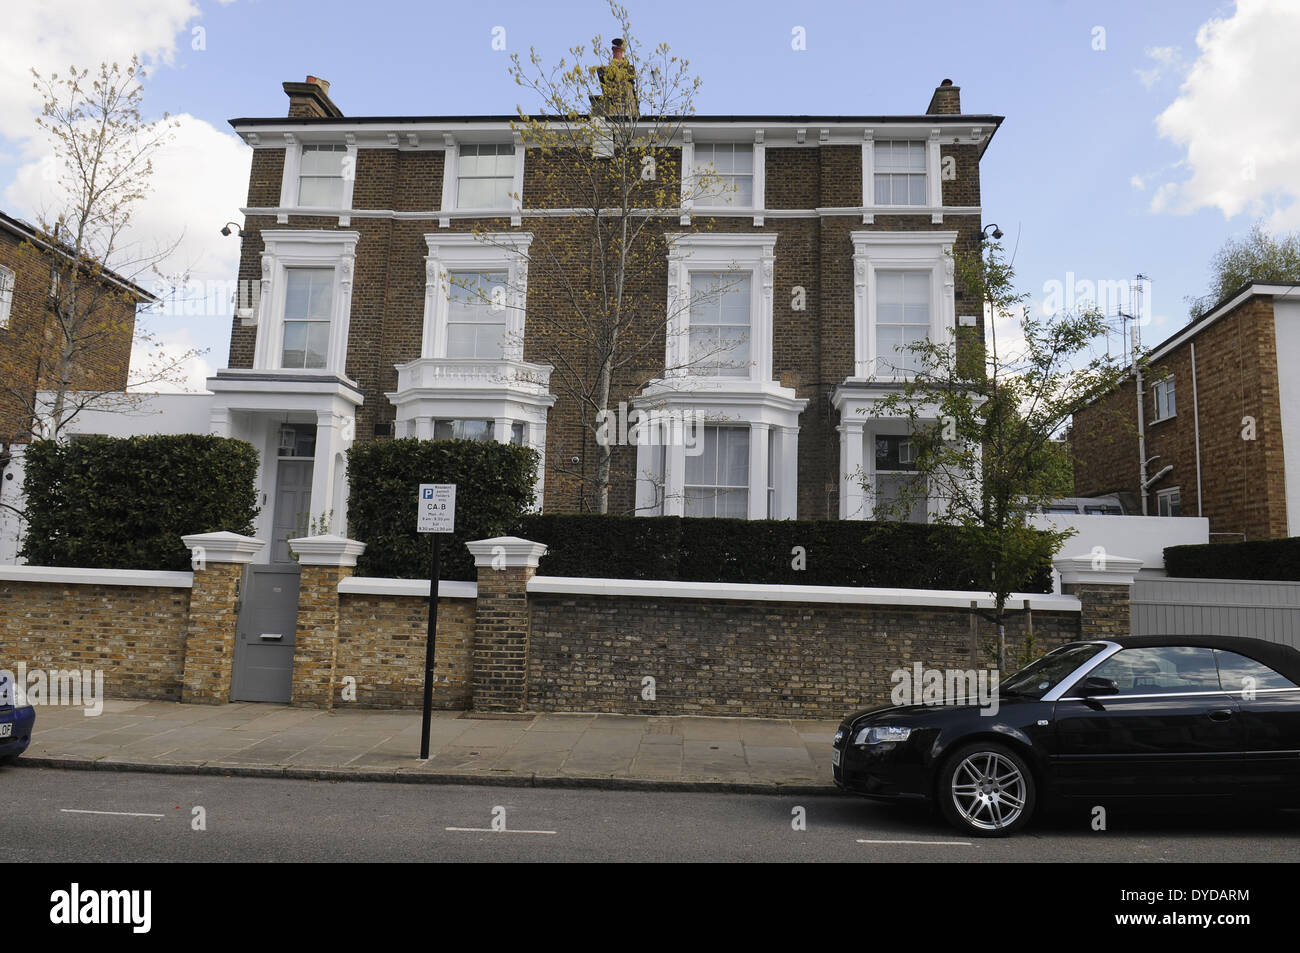 Gwyneth Paltrow Chris Martins London Home In Belsize Park UK